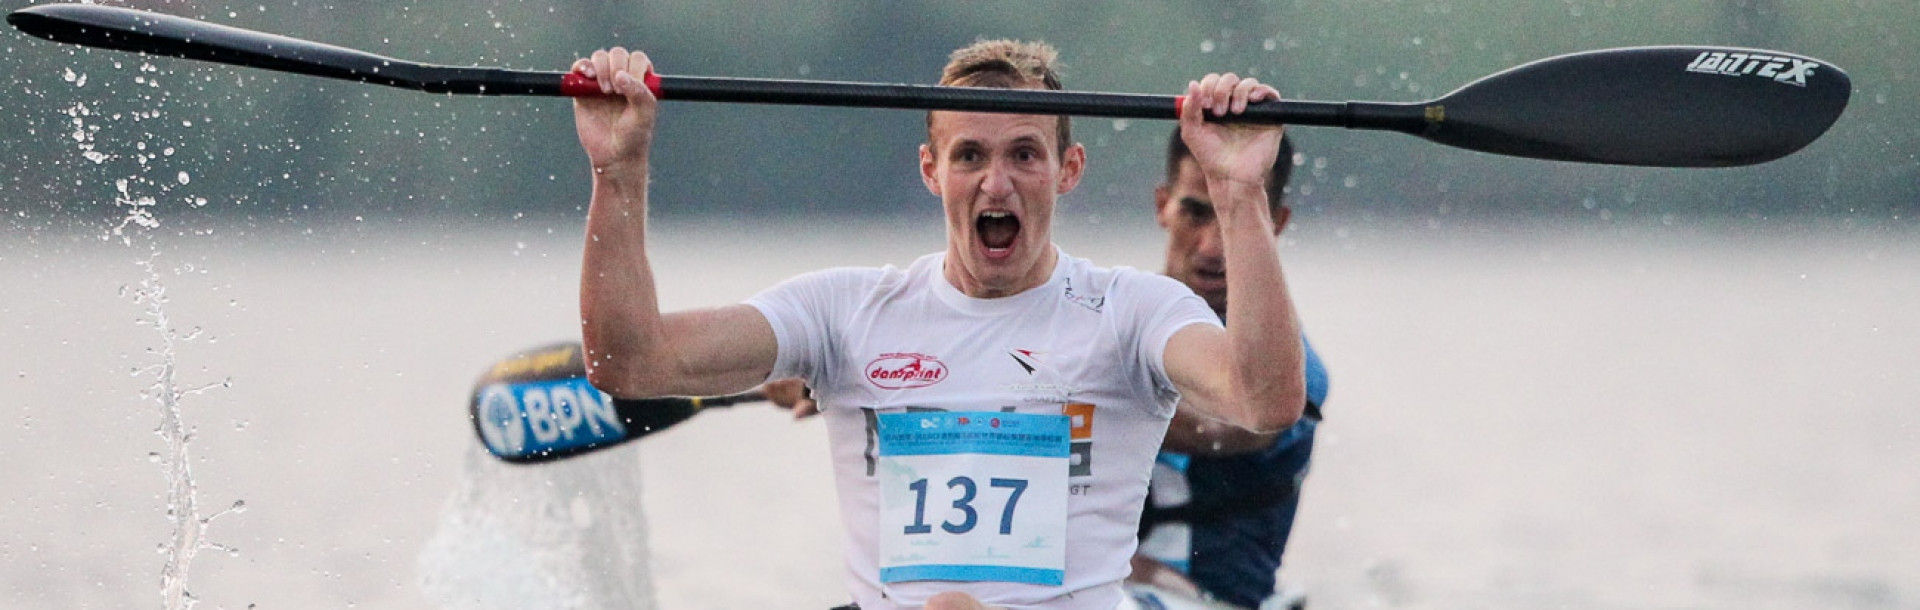 Pedersen makes history at ICF Marathon World Championships